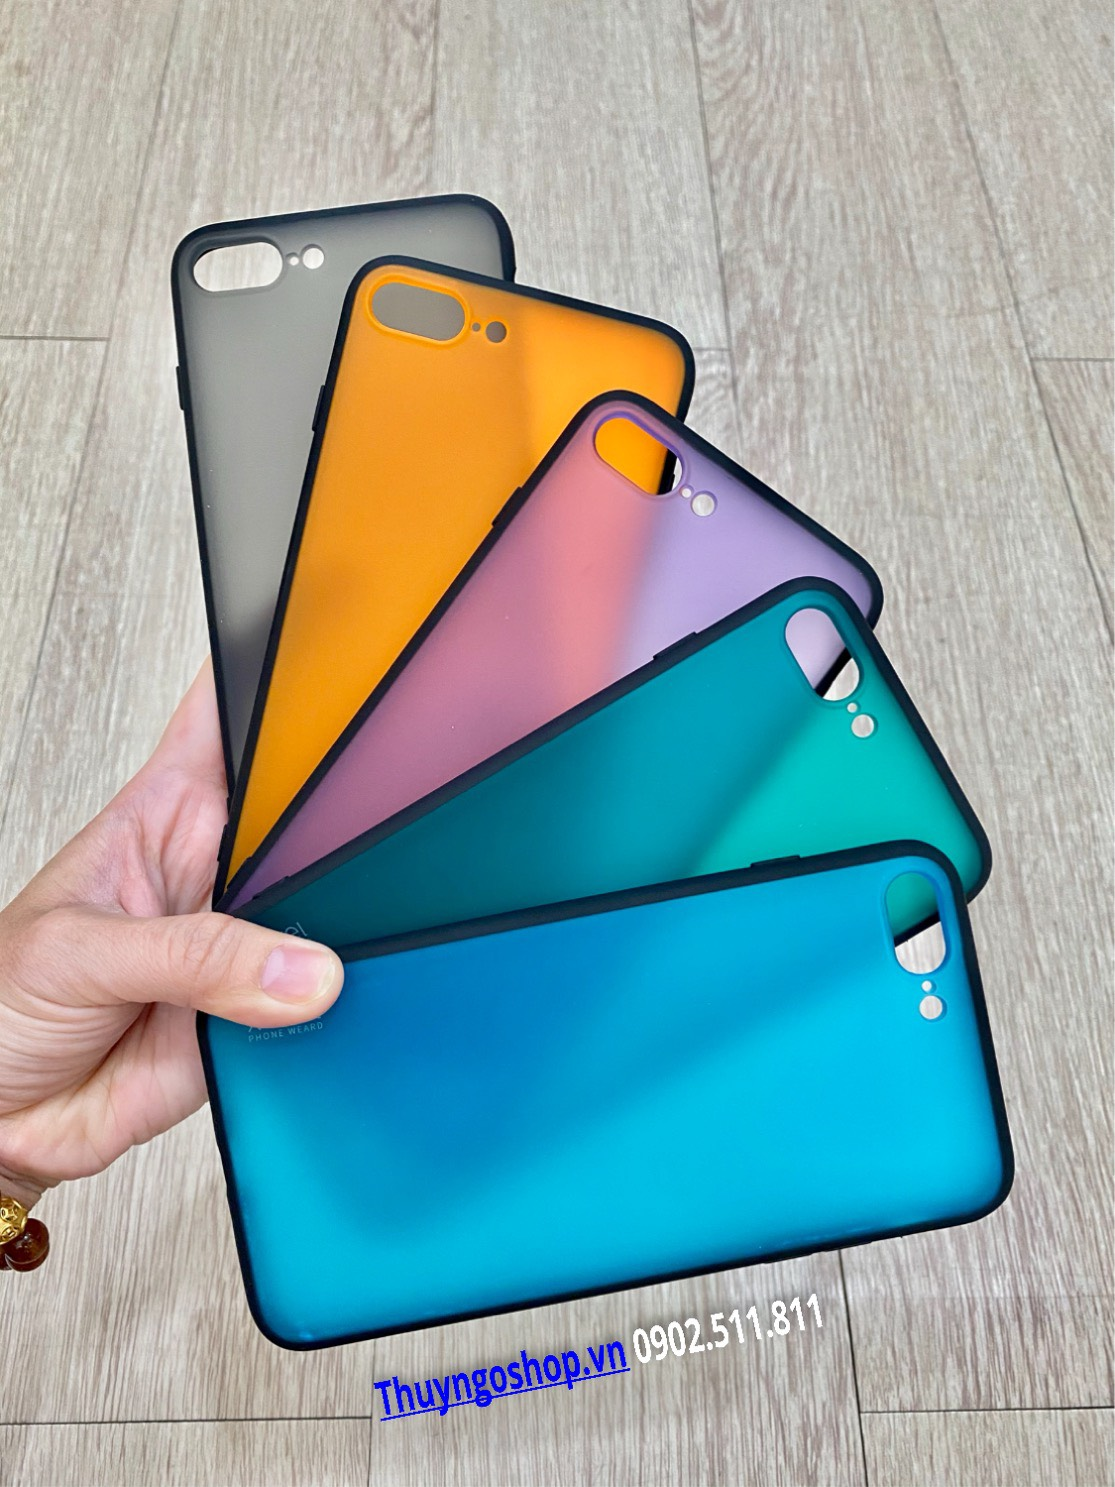 Iphone 11/11 Pro/11 pro max/X/XR/7plus/Xs Max/8plus - Ốp lưng màu nhám chống vân tay